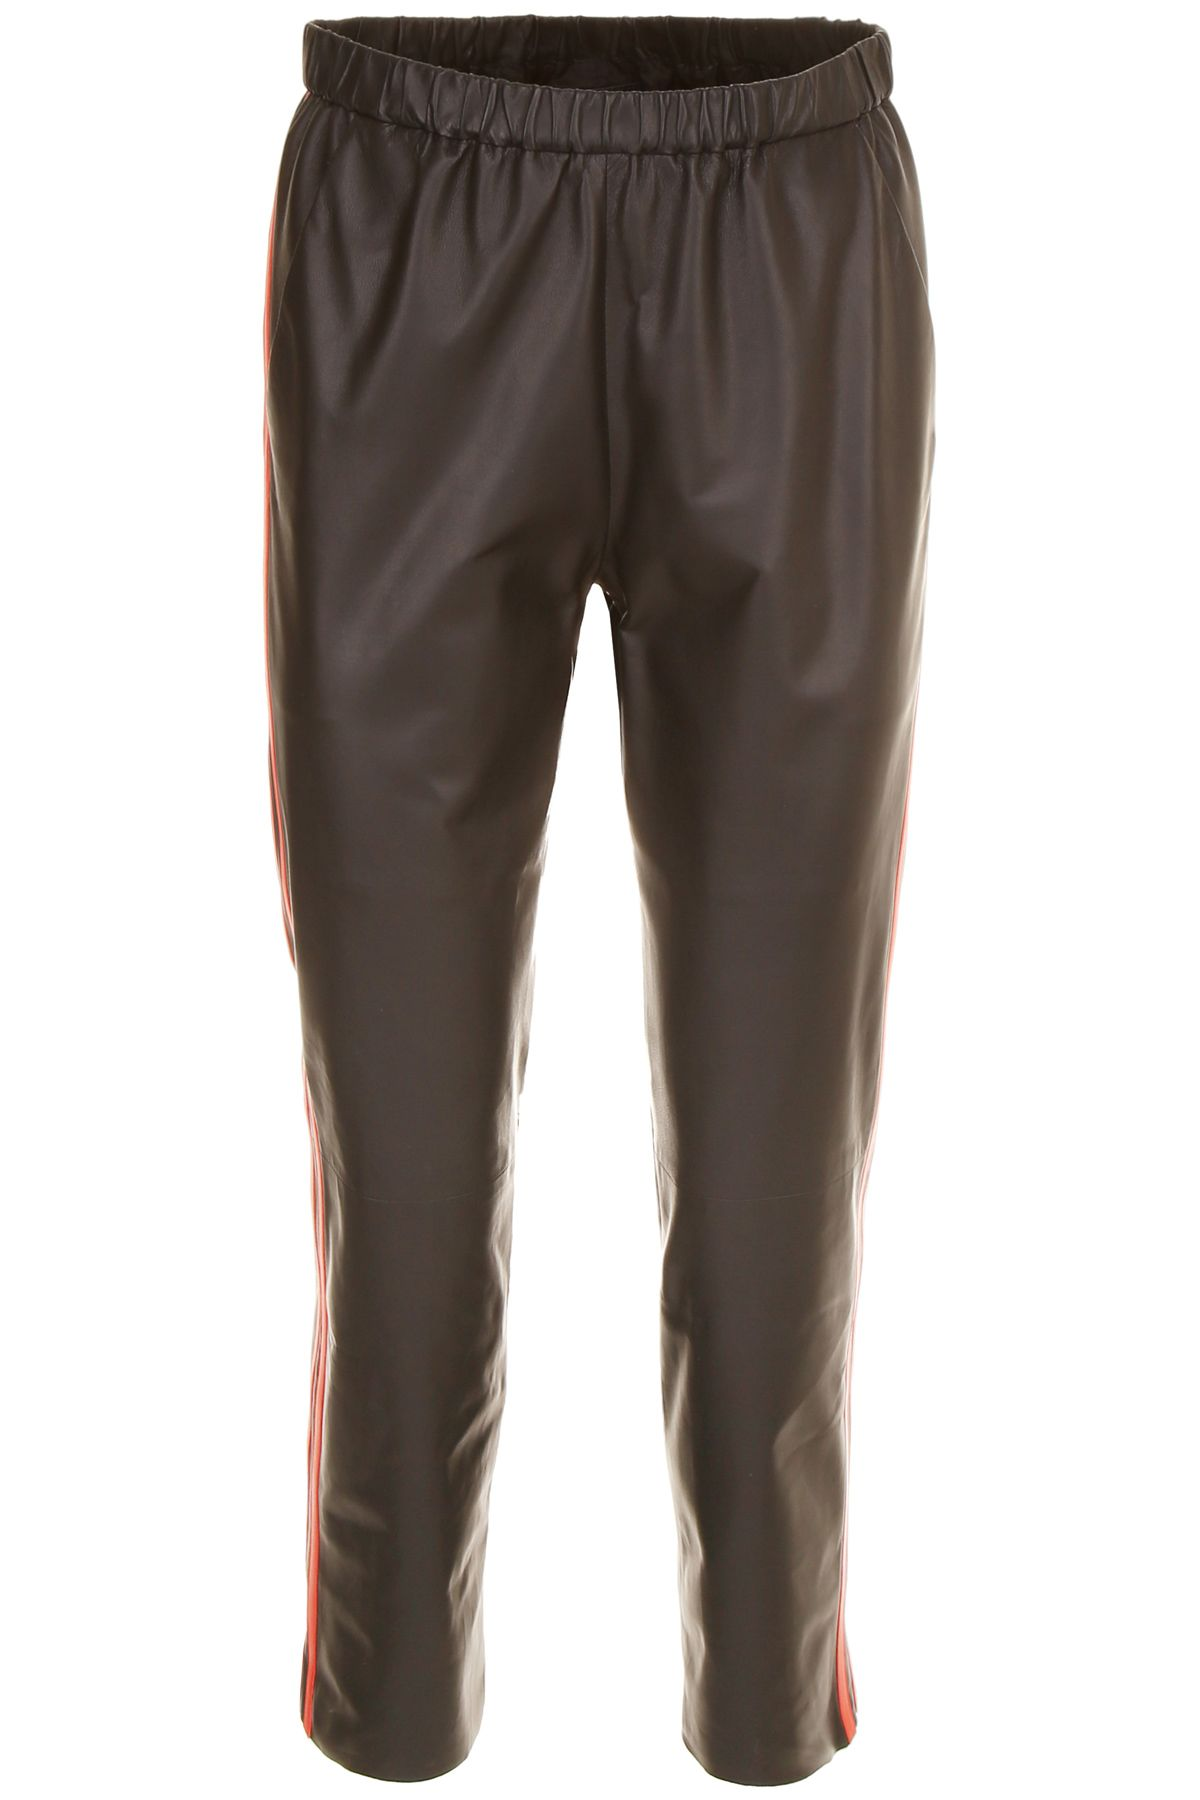 Drome LEATHER TROUSERS WITH SIDE BAND